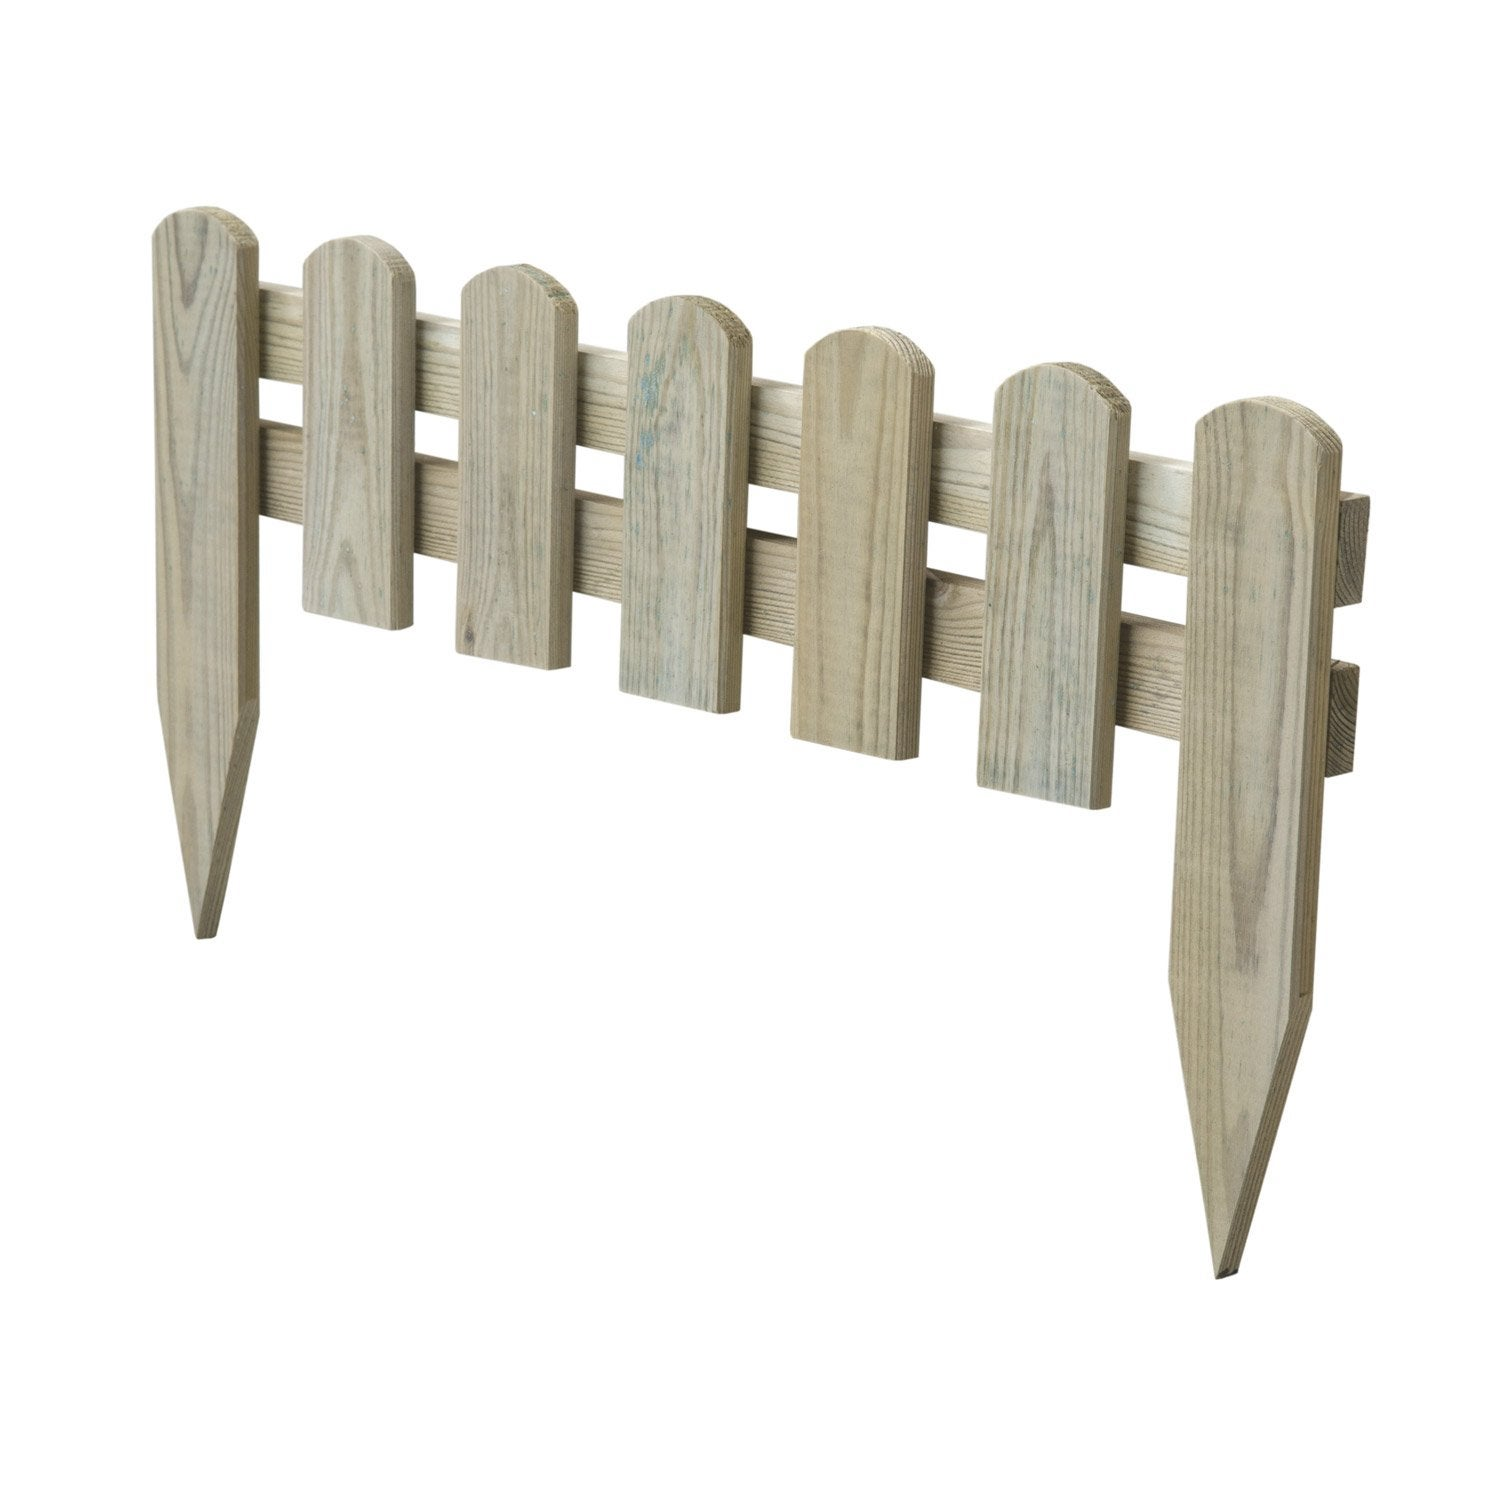 Bordure planter stackette bois naturel x cm leroy merlin - Bordure jardin bois brico ...